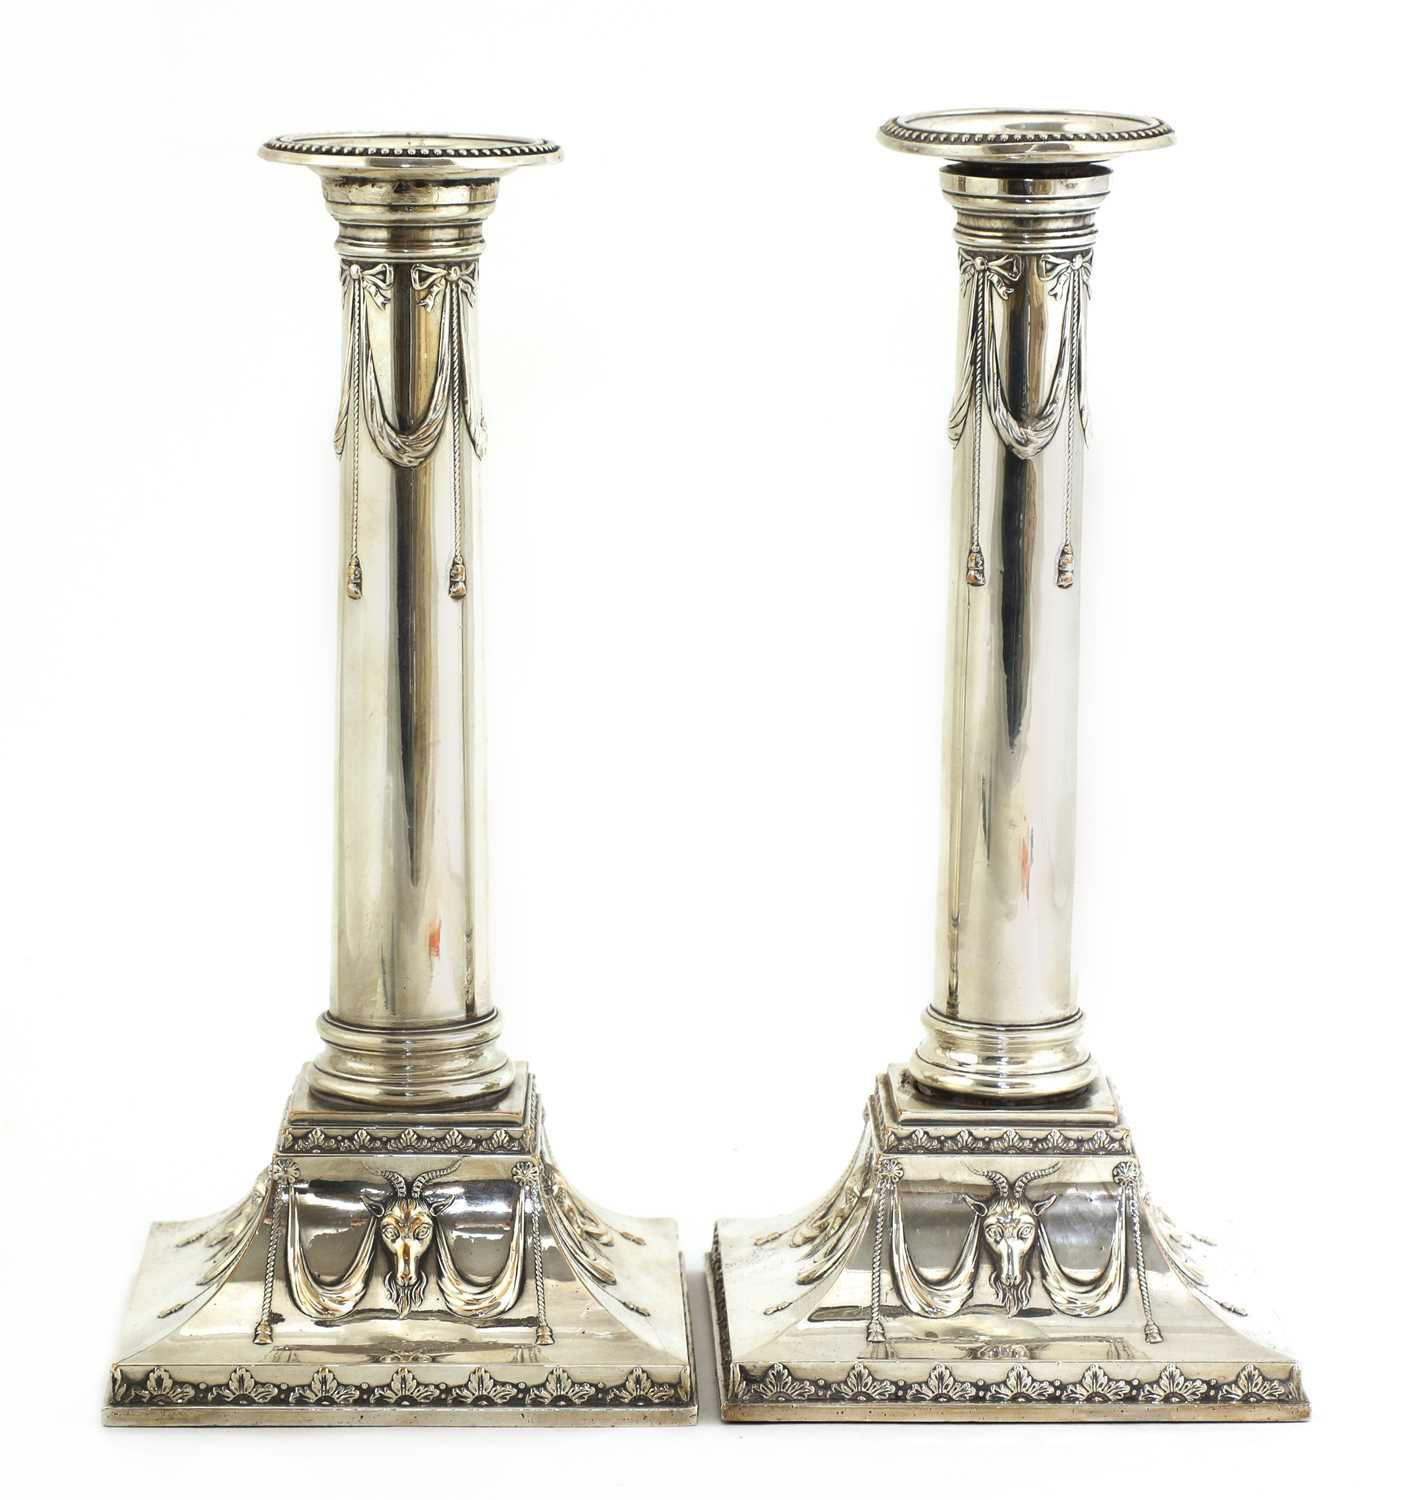 A pair of Edwardian silver-plated neoclassical candlesticks,